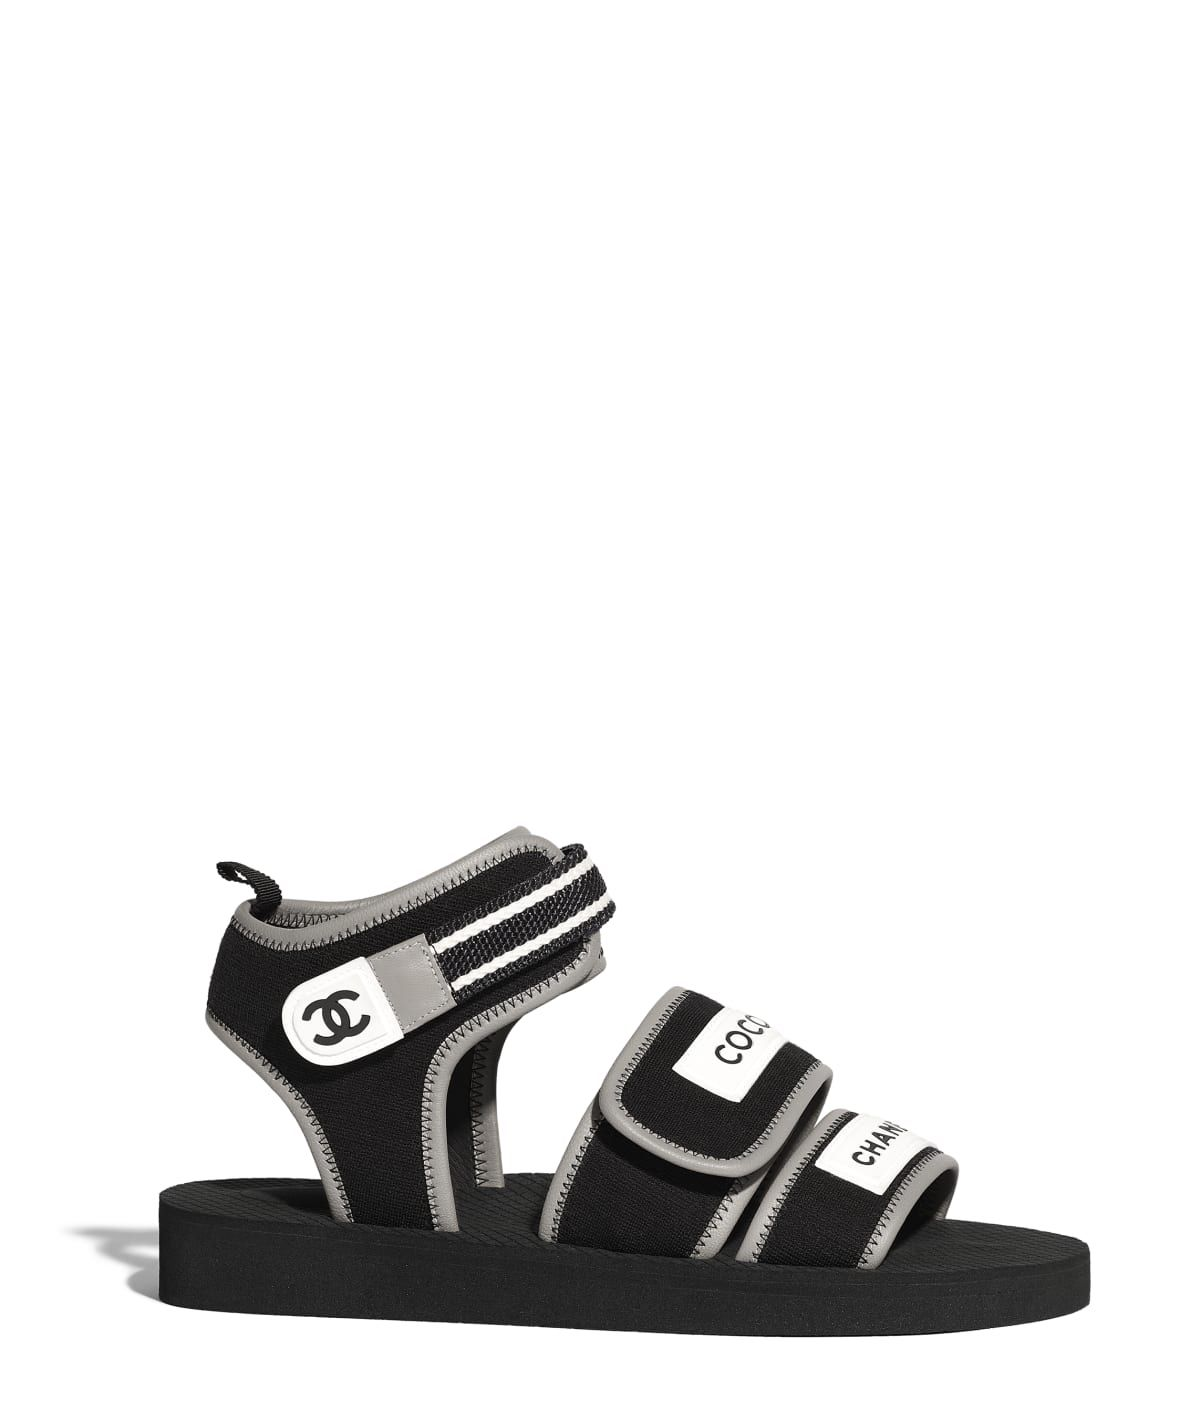 07534ccaf7 Chaussures CHANEL Mode de la collection Printemps-été 2019 ...